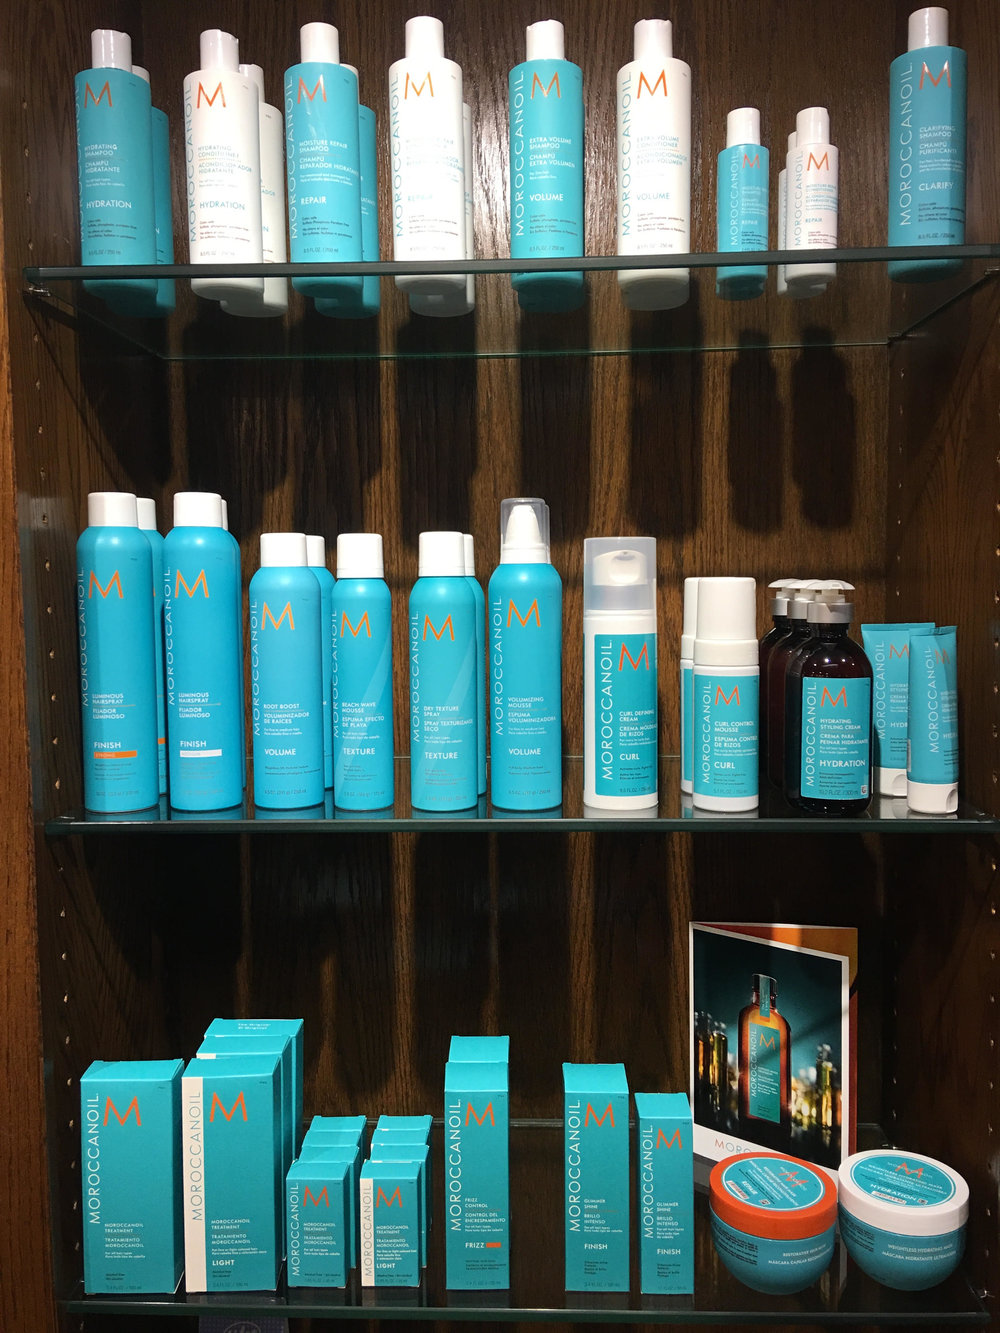 Taliesin Salon Spa at the Ranch (303-465-6363)  has an amazing Moroccan Oil hair care line!